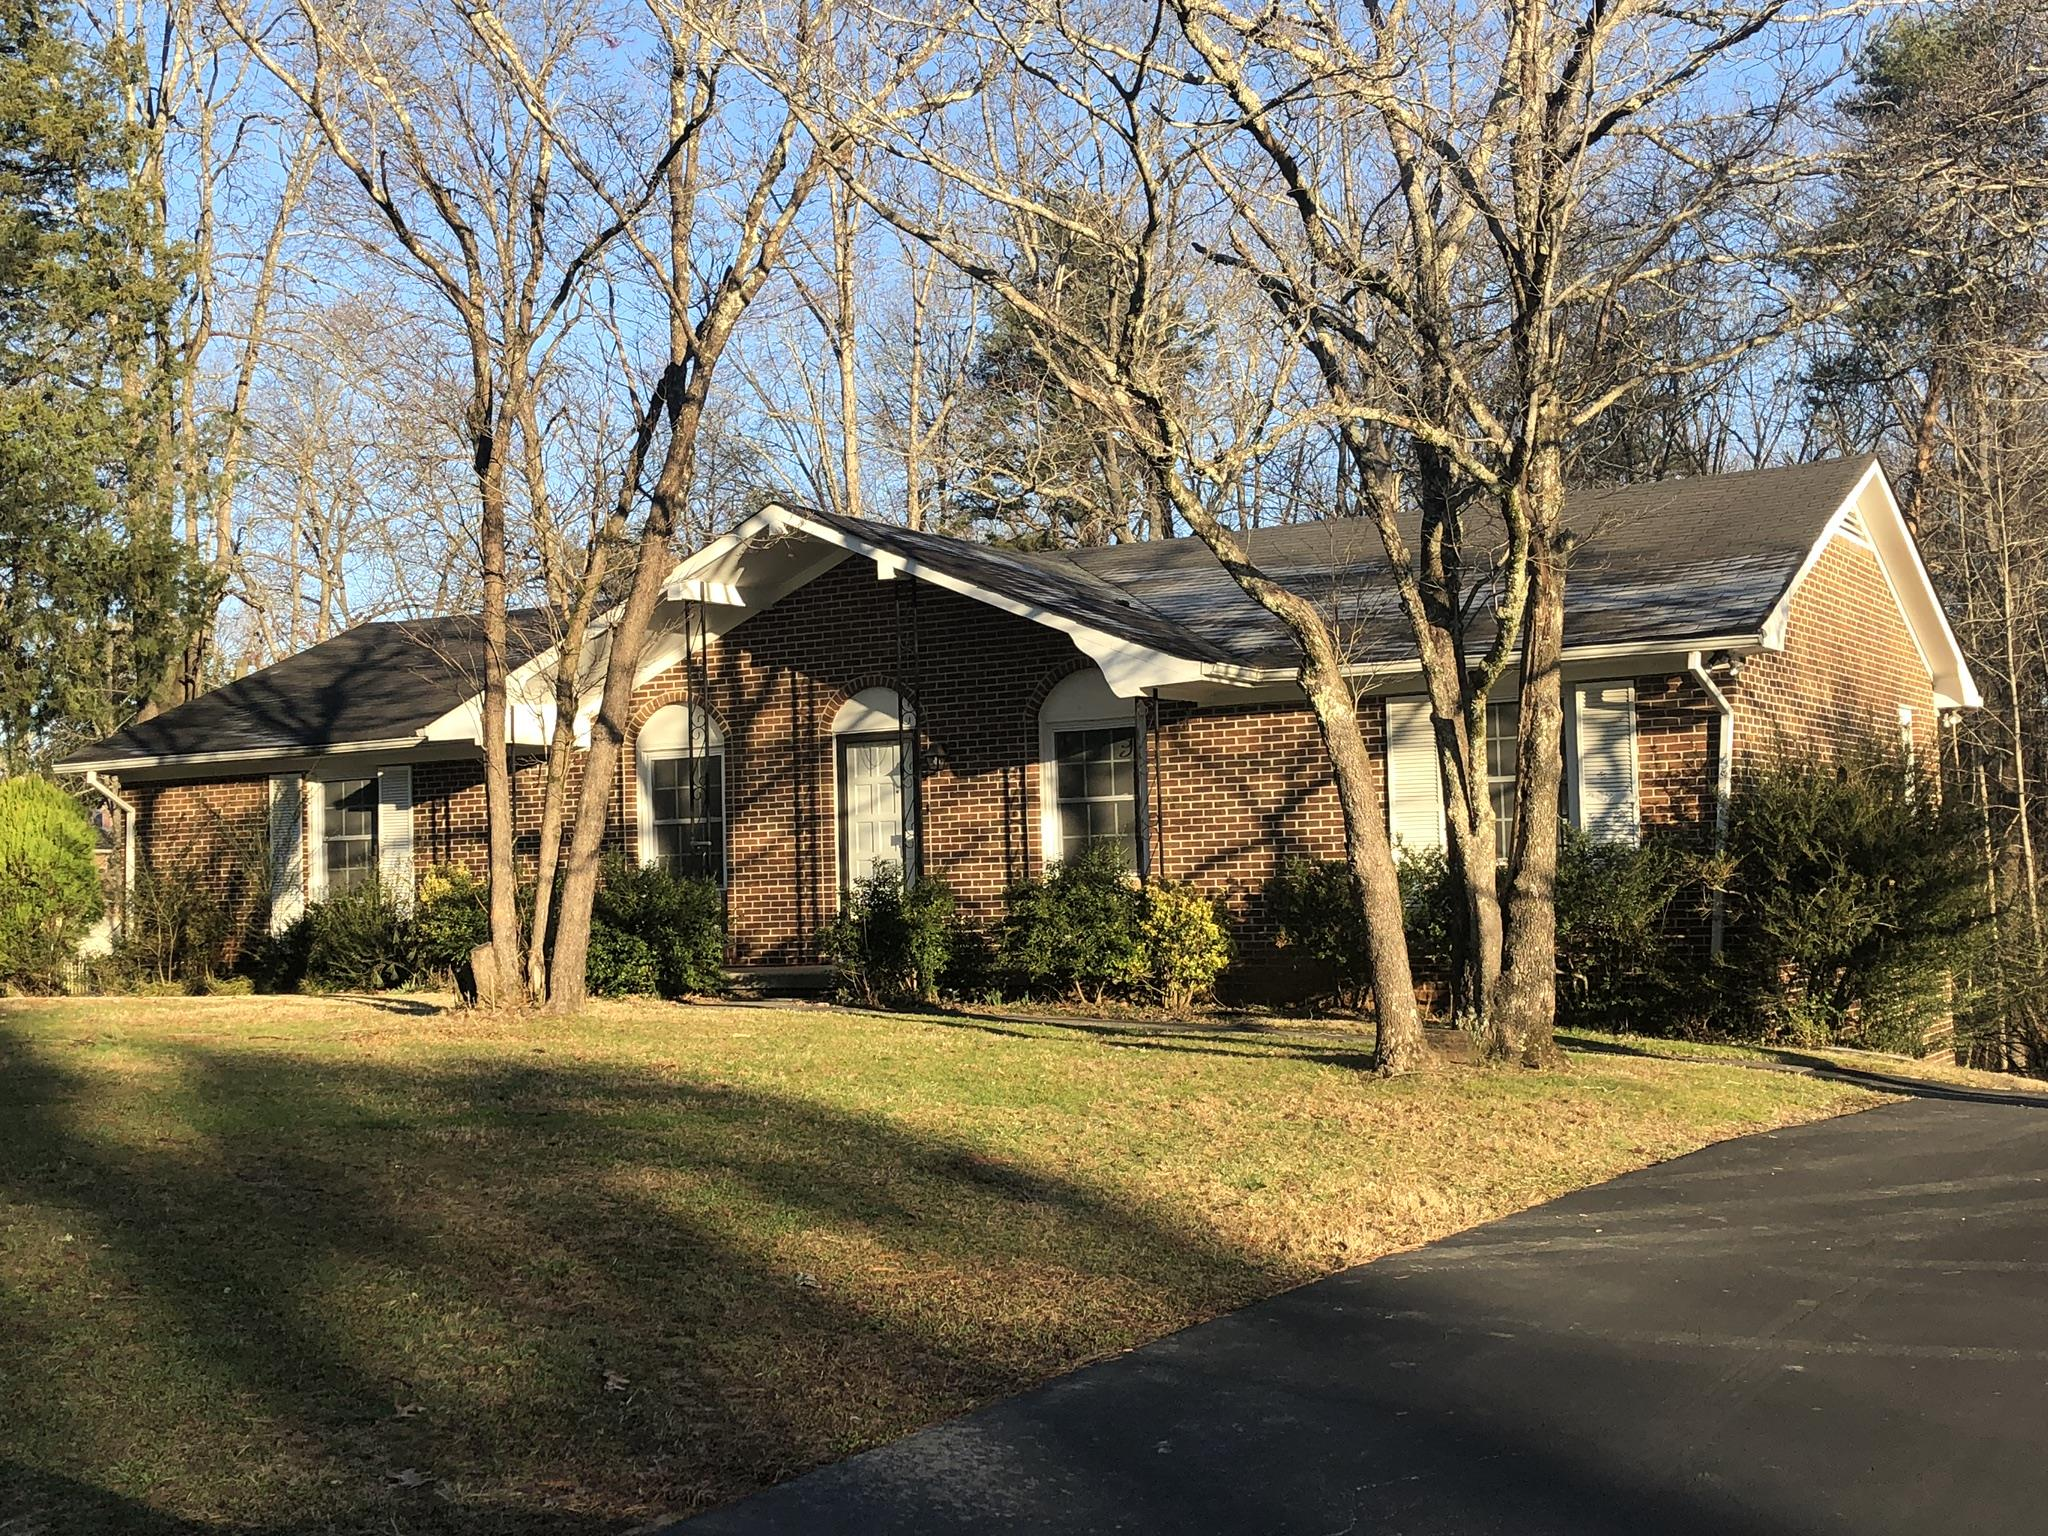 881 Lone Oak Dr, Cookeville, TN 38501 - Cookeville, TN real estate listing